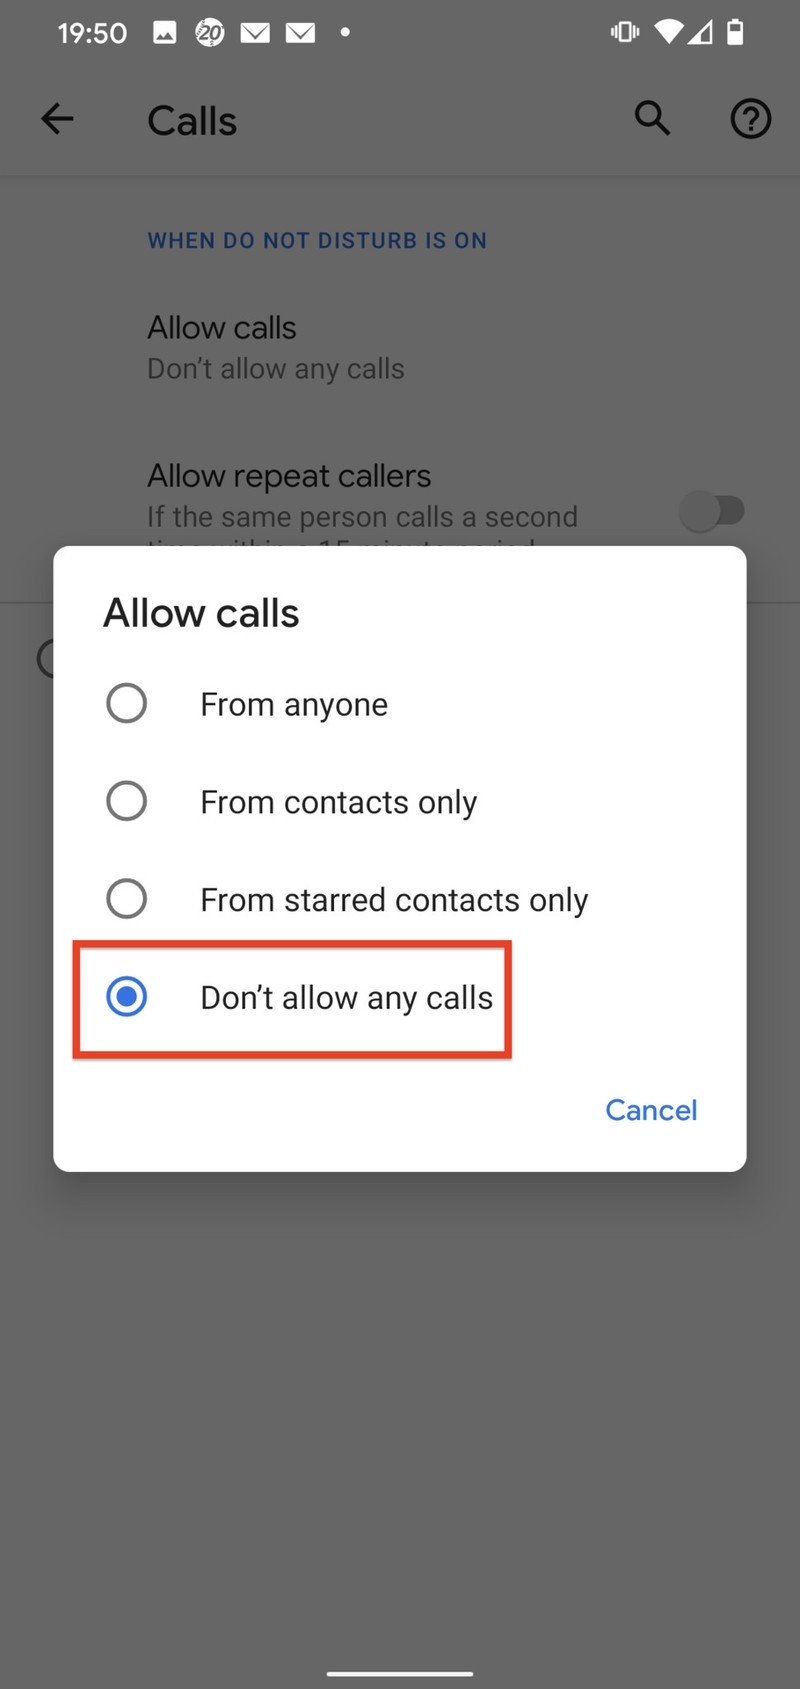 do-not-allow-calls-with-dnd.jpg?itok=Ydr